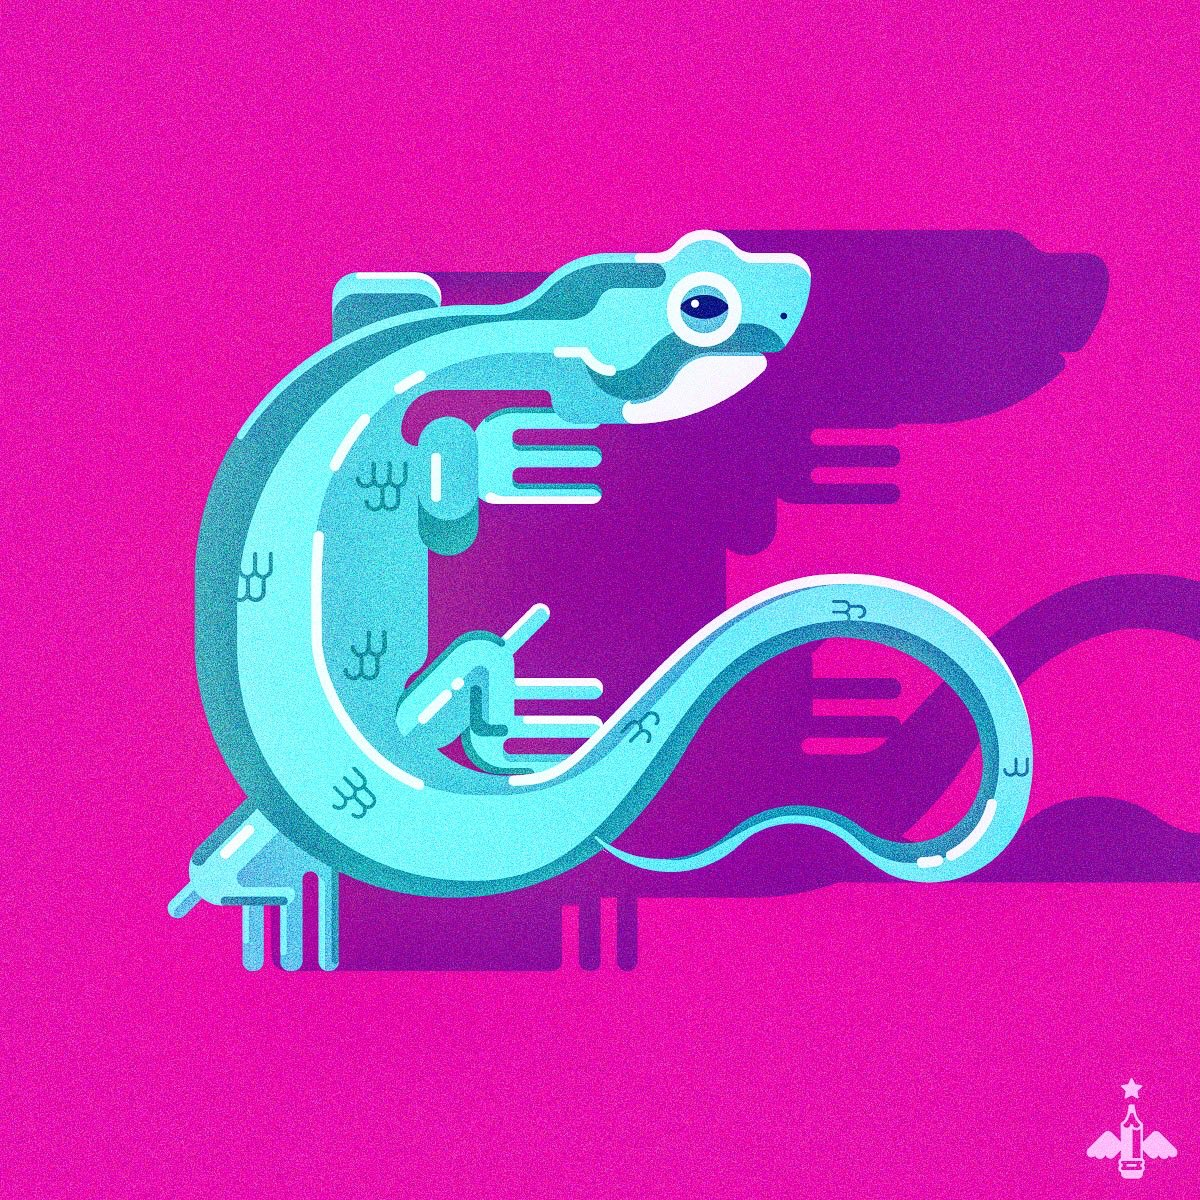 #doodle of the day    #lizard #graphicdesign #vector #contrast #illustrationpic.twitter.com/lg1KdozISU